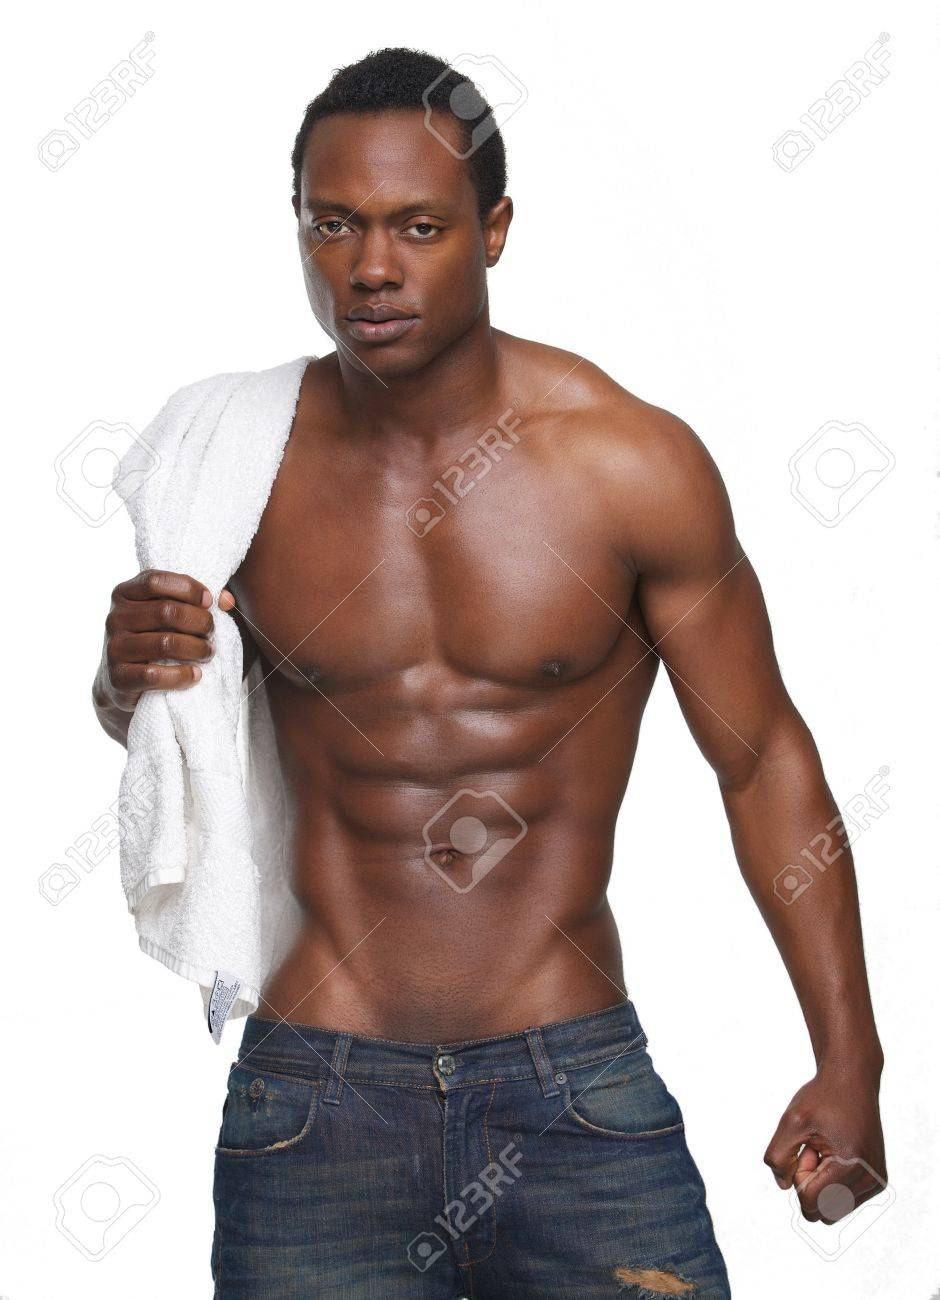 Portrait Of A Muscular African American Man With No Shirt Stock